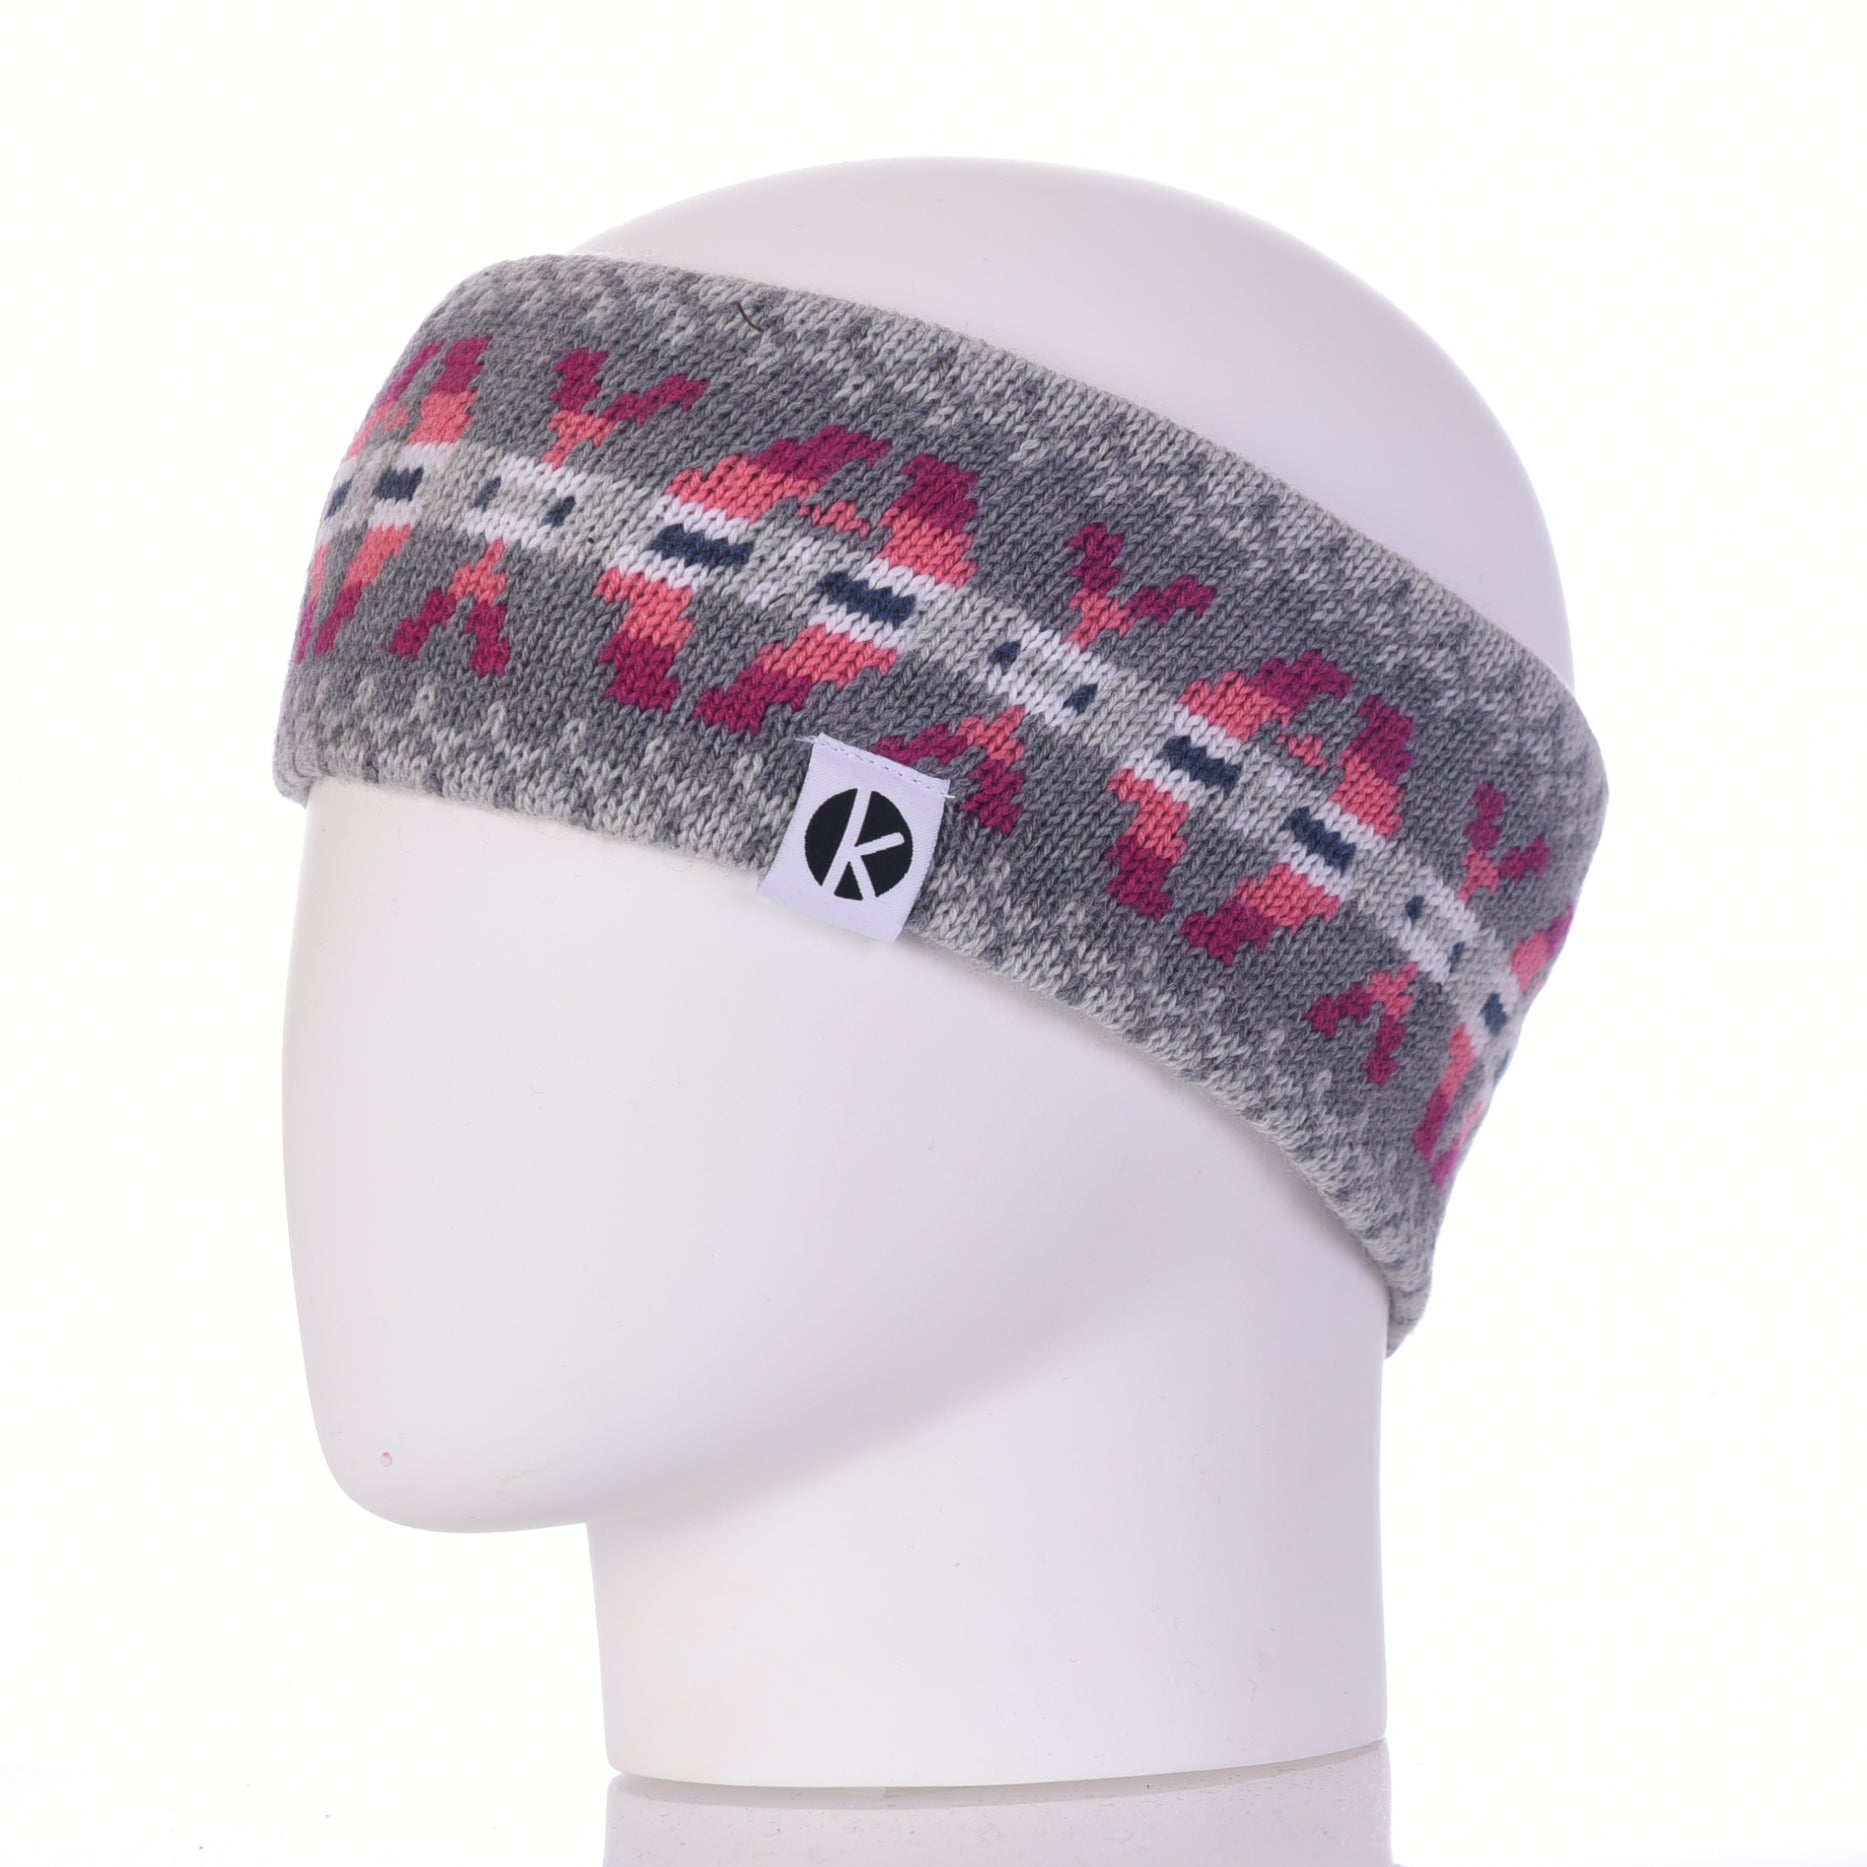 Burster Merino Wool Headband - Grey